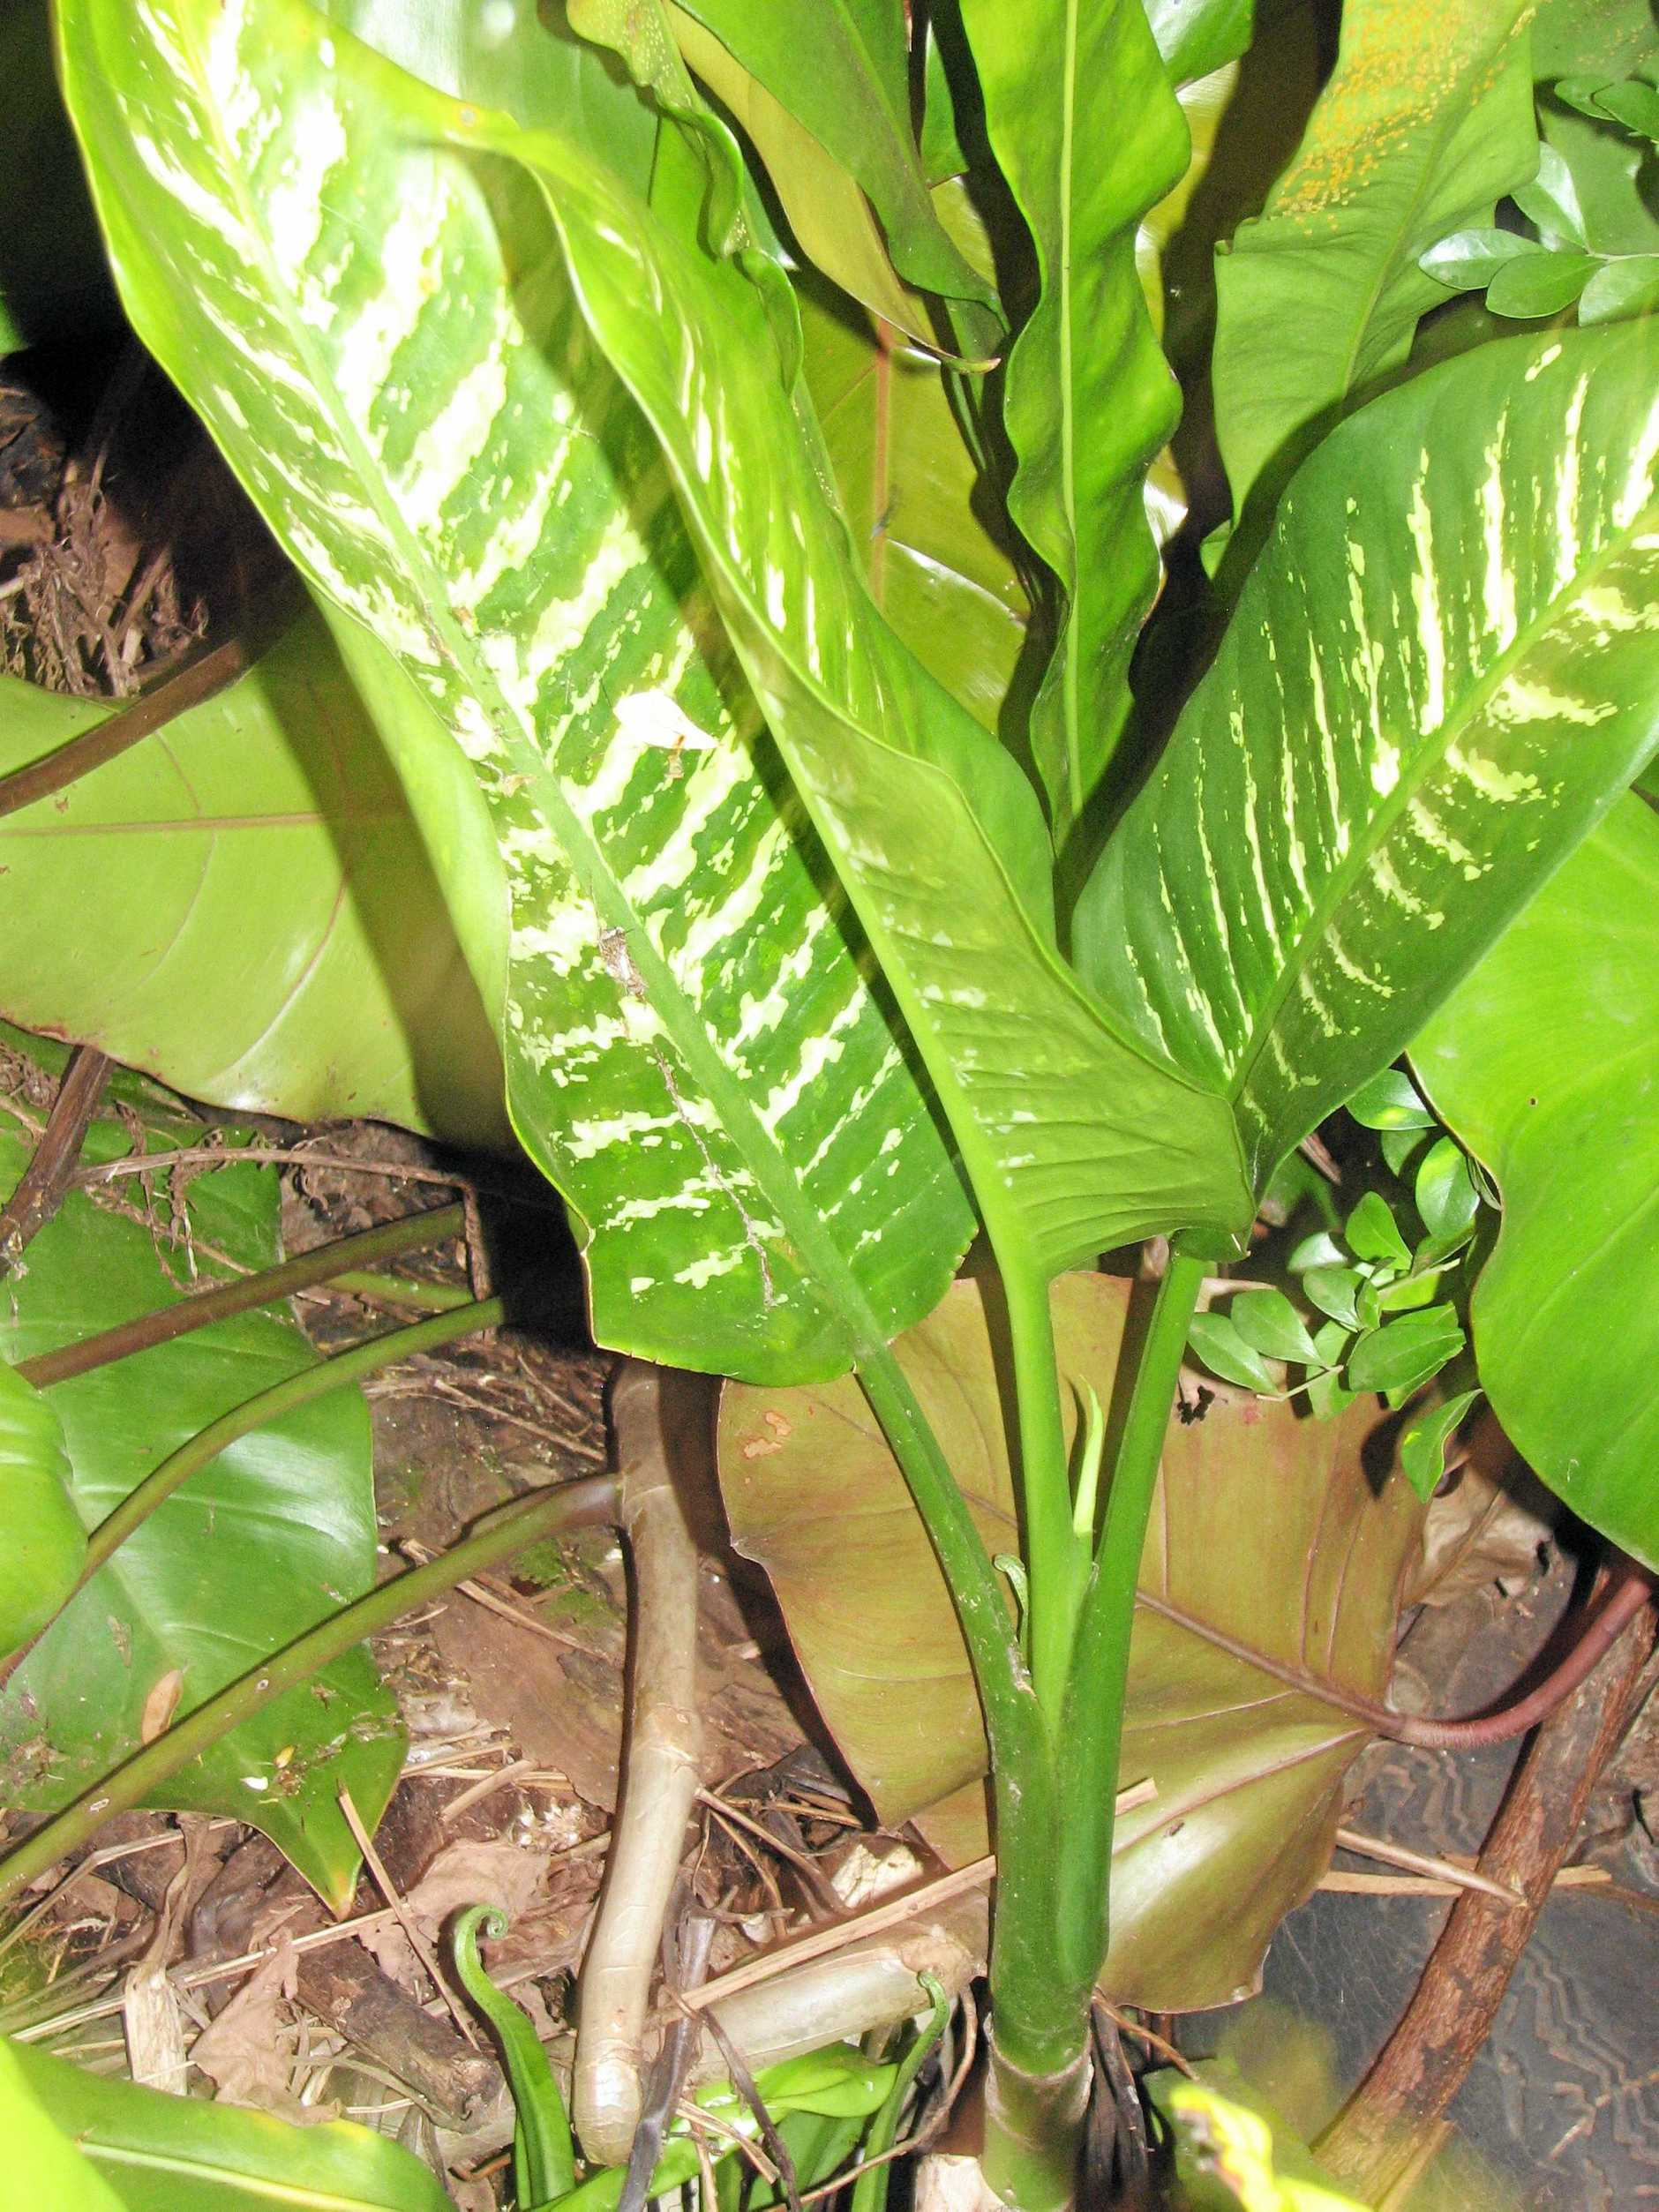 Dieffenbachia, which has the common name of 'dumb cane' can be used an an indoor and outdoor plant - but must never be ingested.